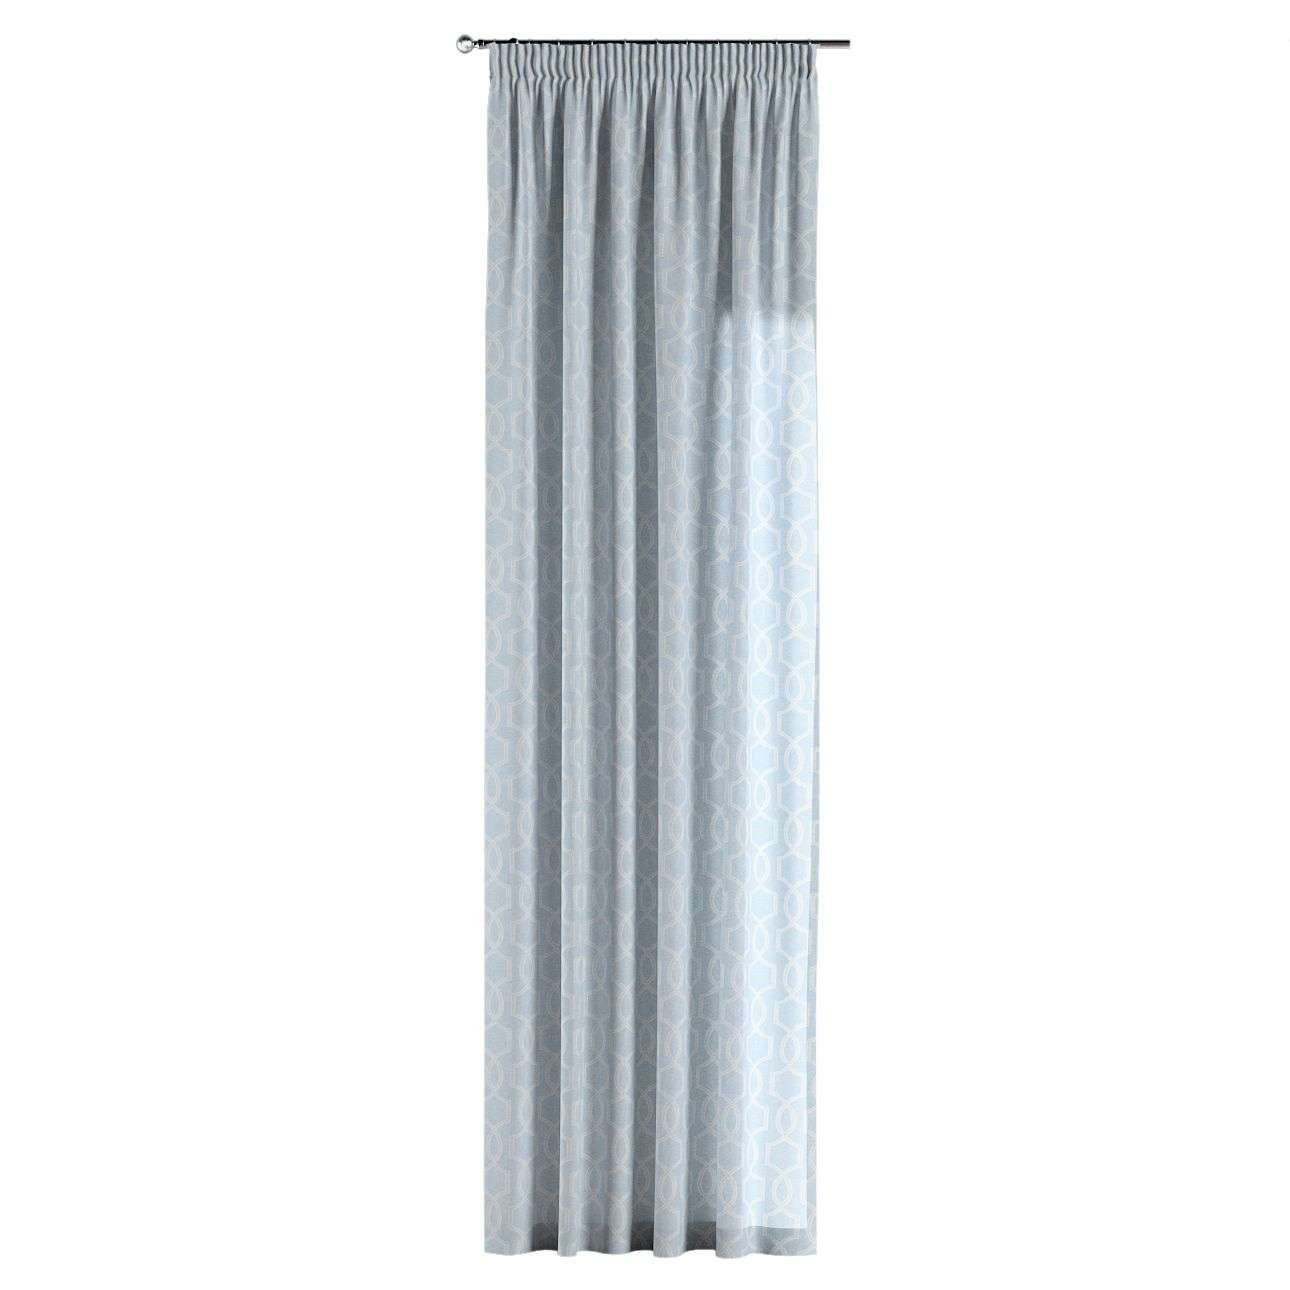 Pencil pleat curtains in collection Comics/Geometrical, fabric: 141-25